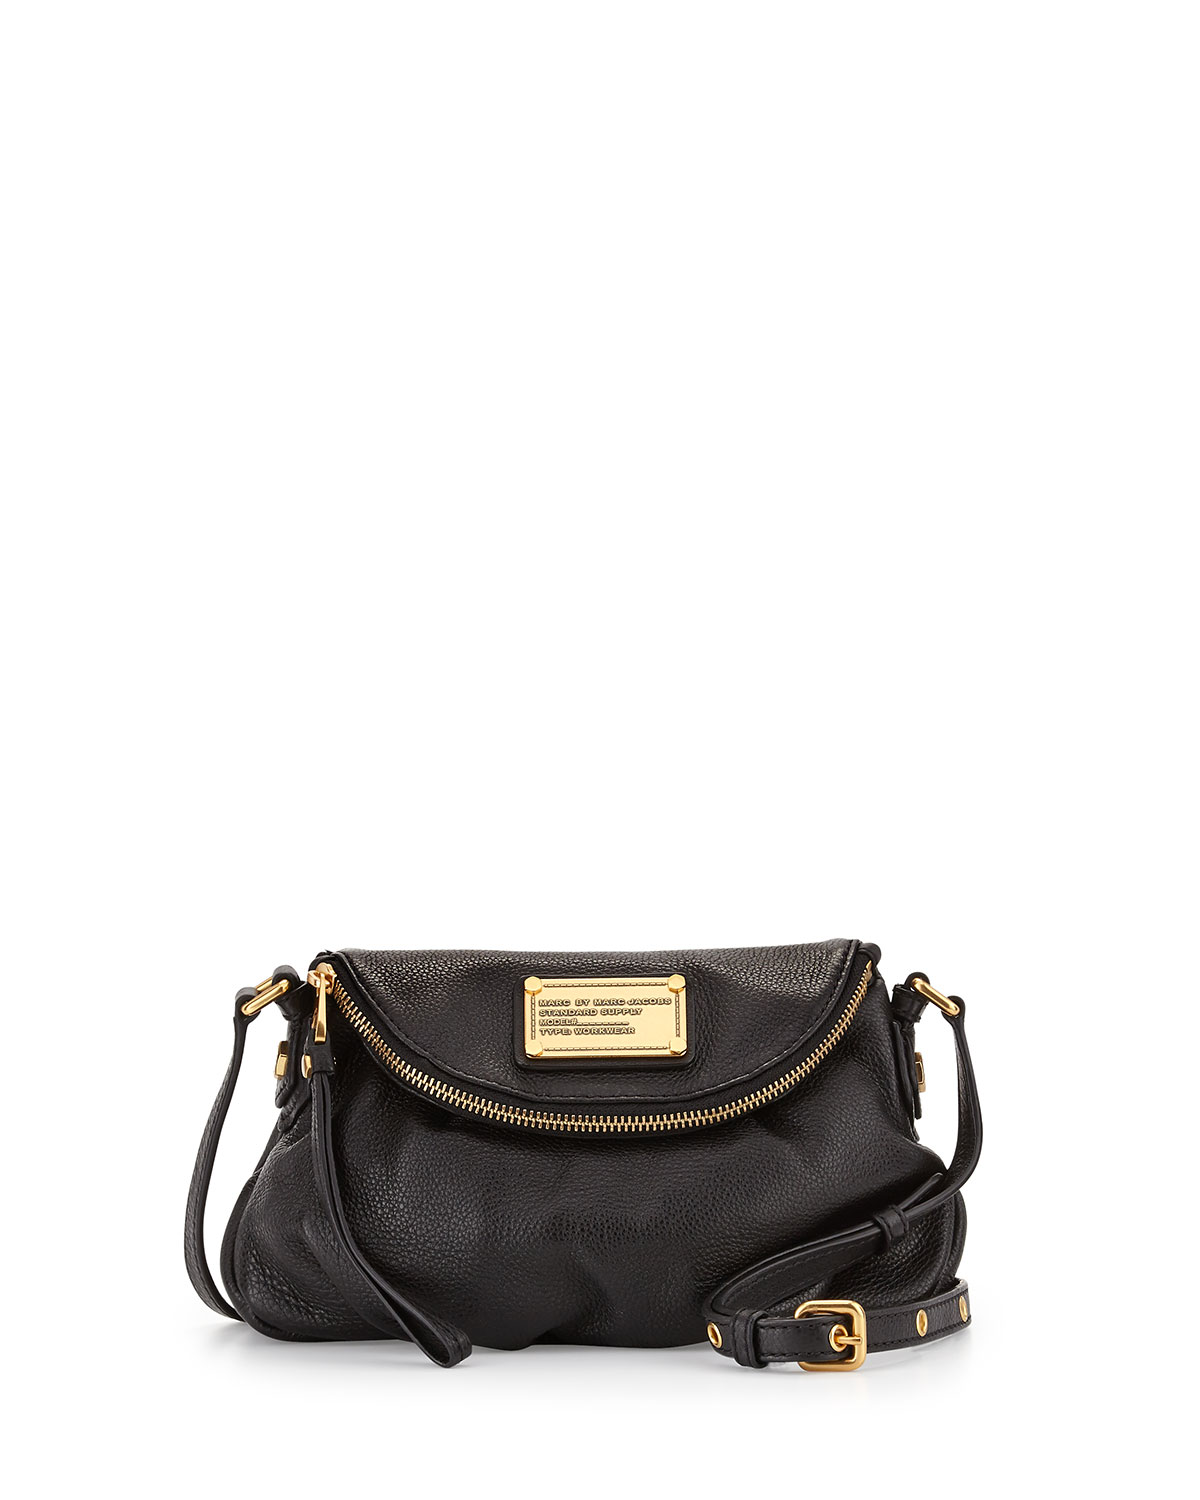 aa0405834a4e MARC by Marc Jacobs Classic Q Natasha Mini Crossbody Bag